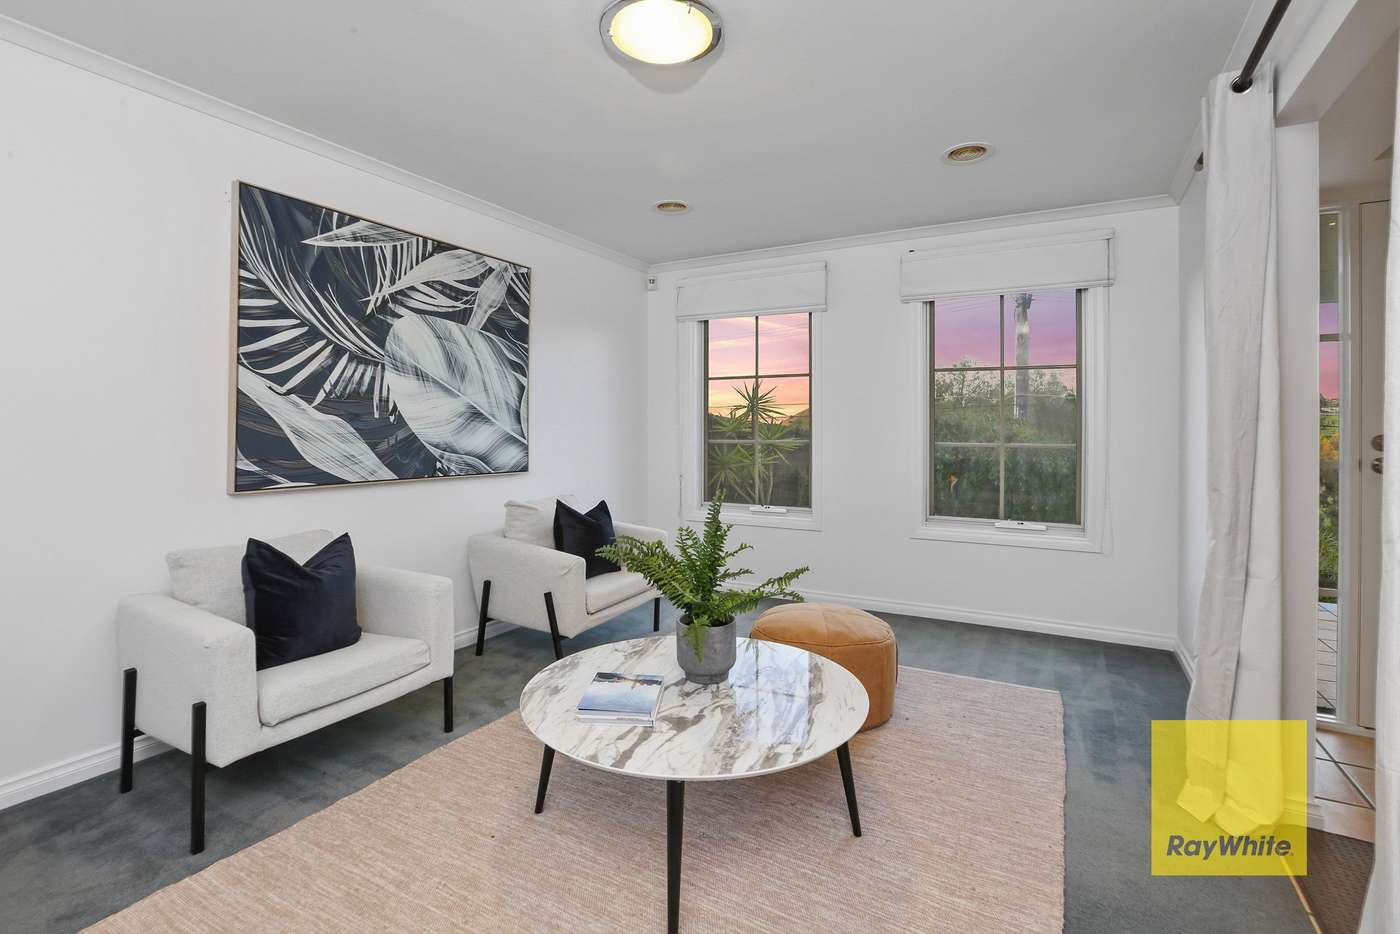 Fifth view of Homely house listing, 33 Queens Park Road, Highton VIC 3216